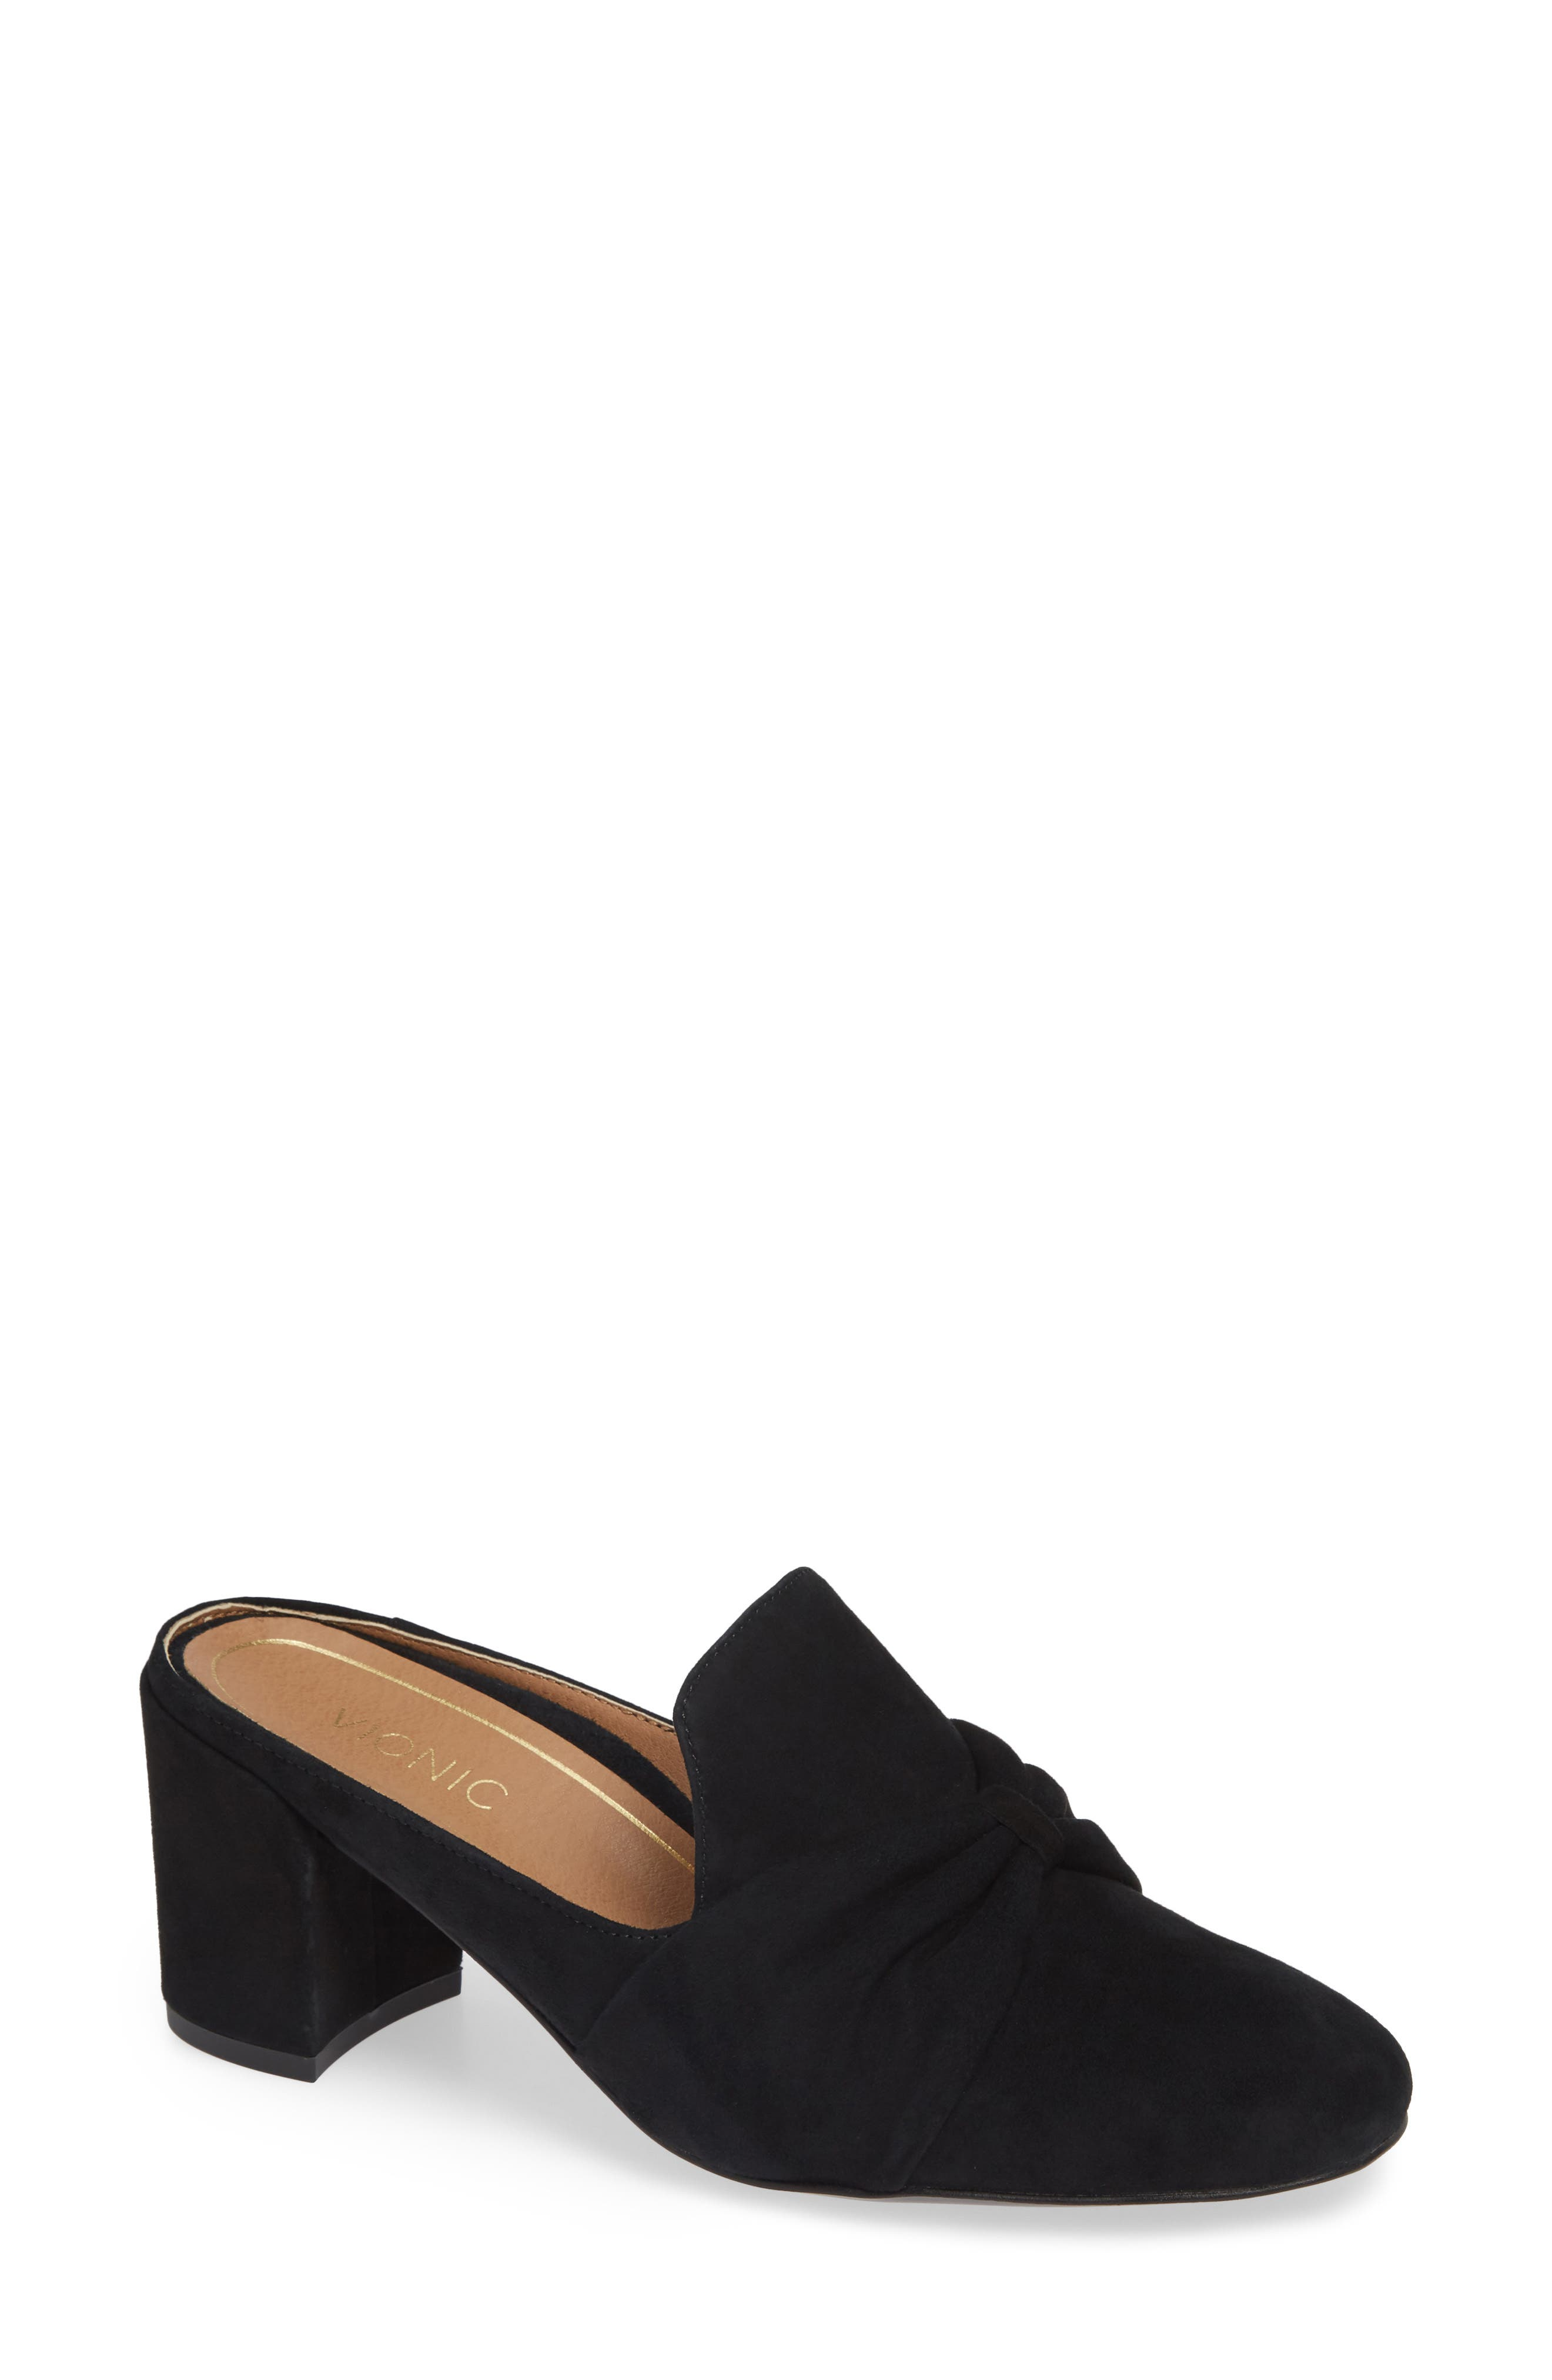 Presley Mule,                         Main,                         color, BLACK SUEDE